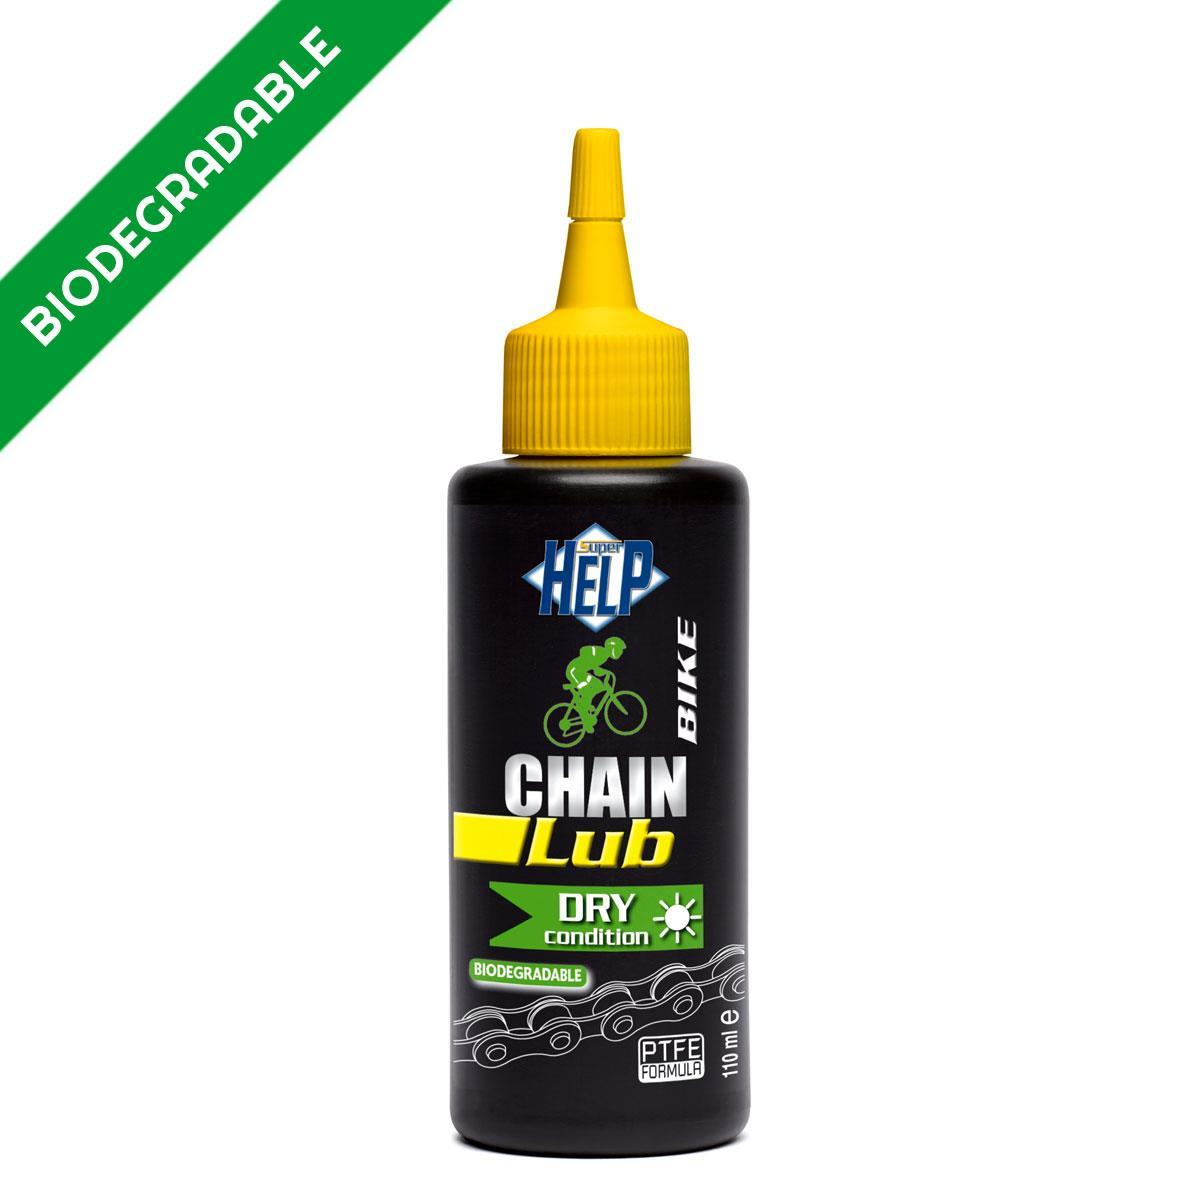 CHAIN LUB DRY CONDITION  0 Super Help